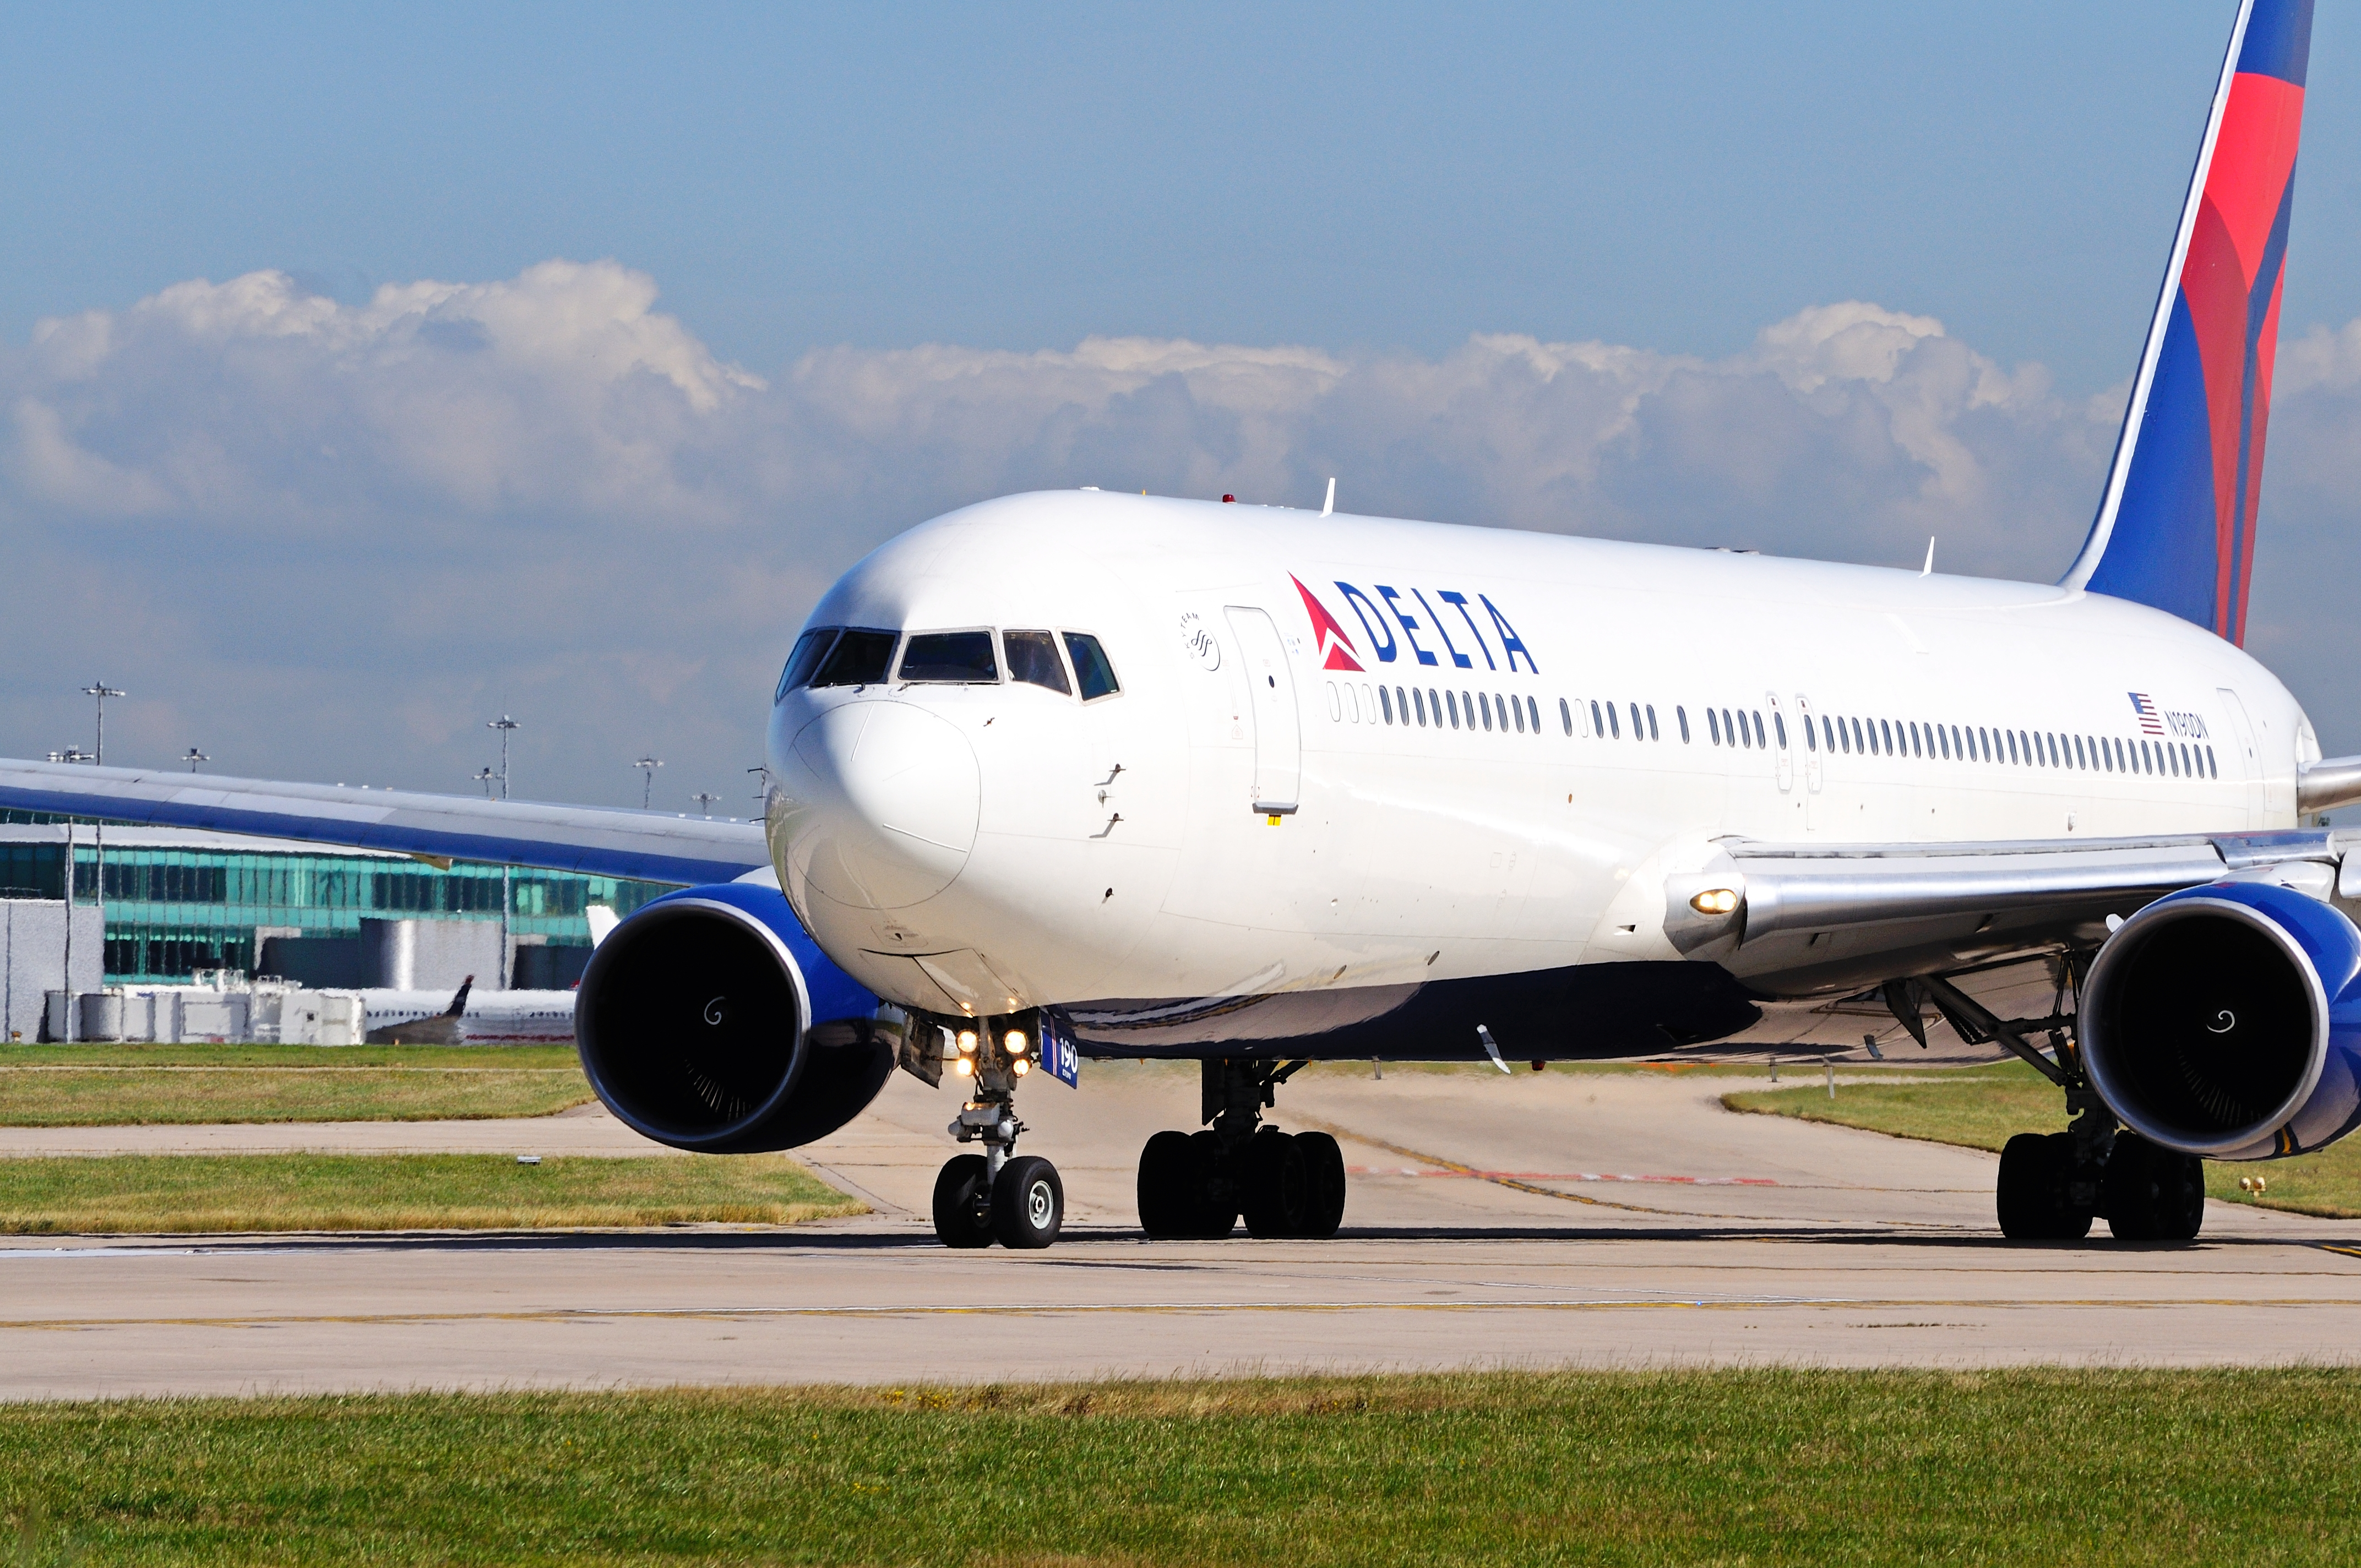 This July 22, 2014 file photo shows a Delta Air Lines Boeing 767-332ER aircraft at Manchester Airport, U.K.